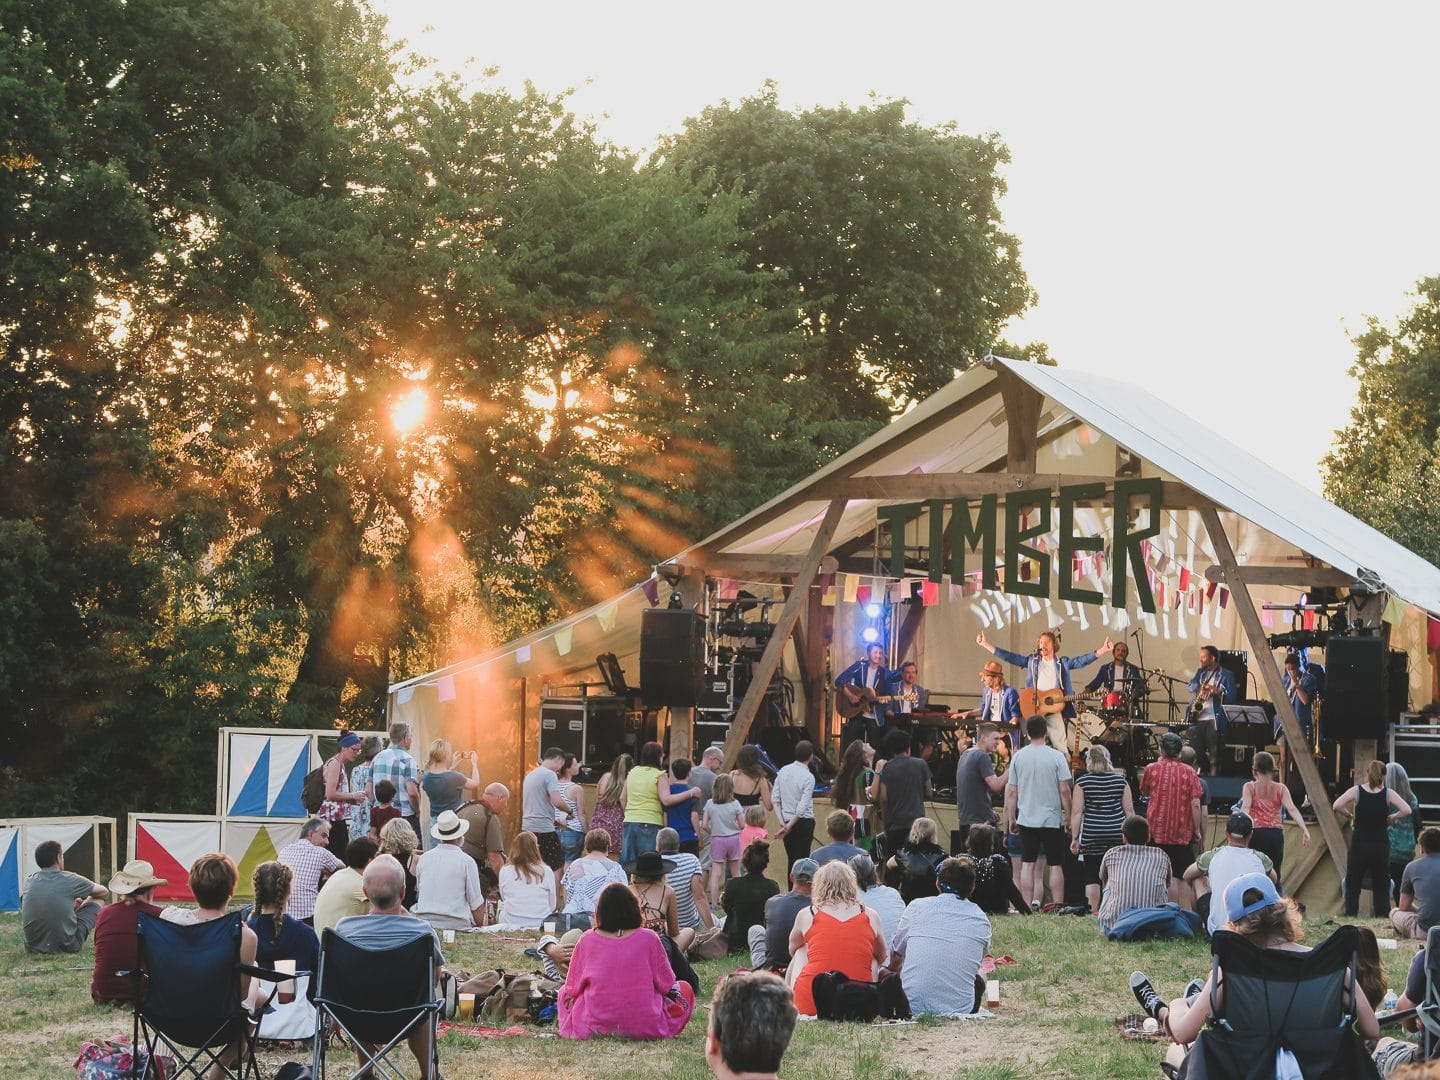 Festival Diaries: Timber Festival | Curiously Conscious